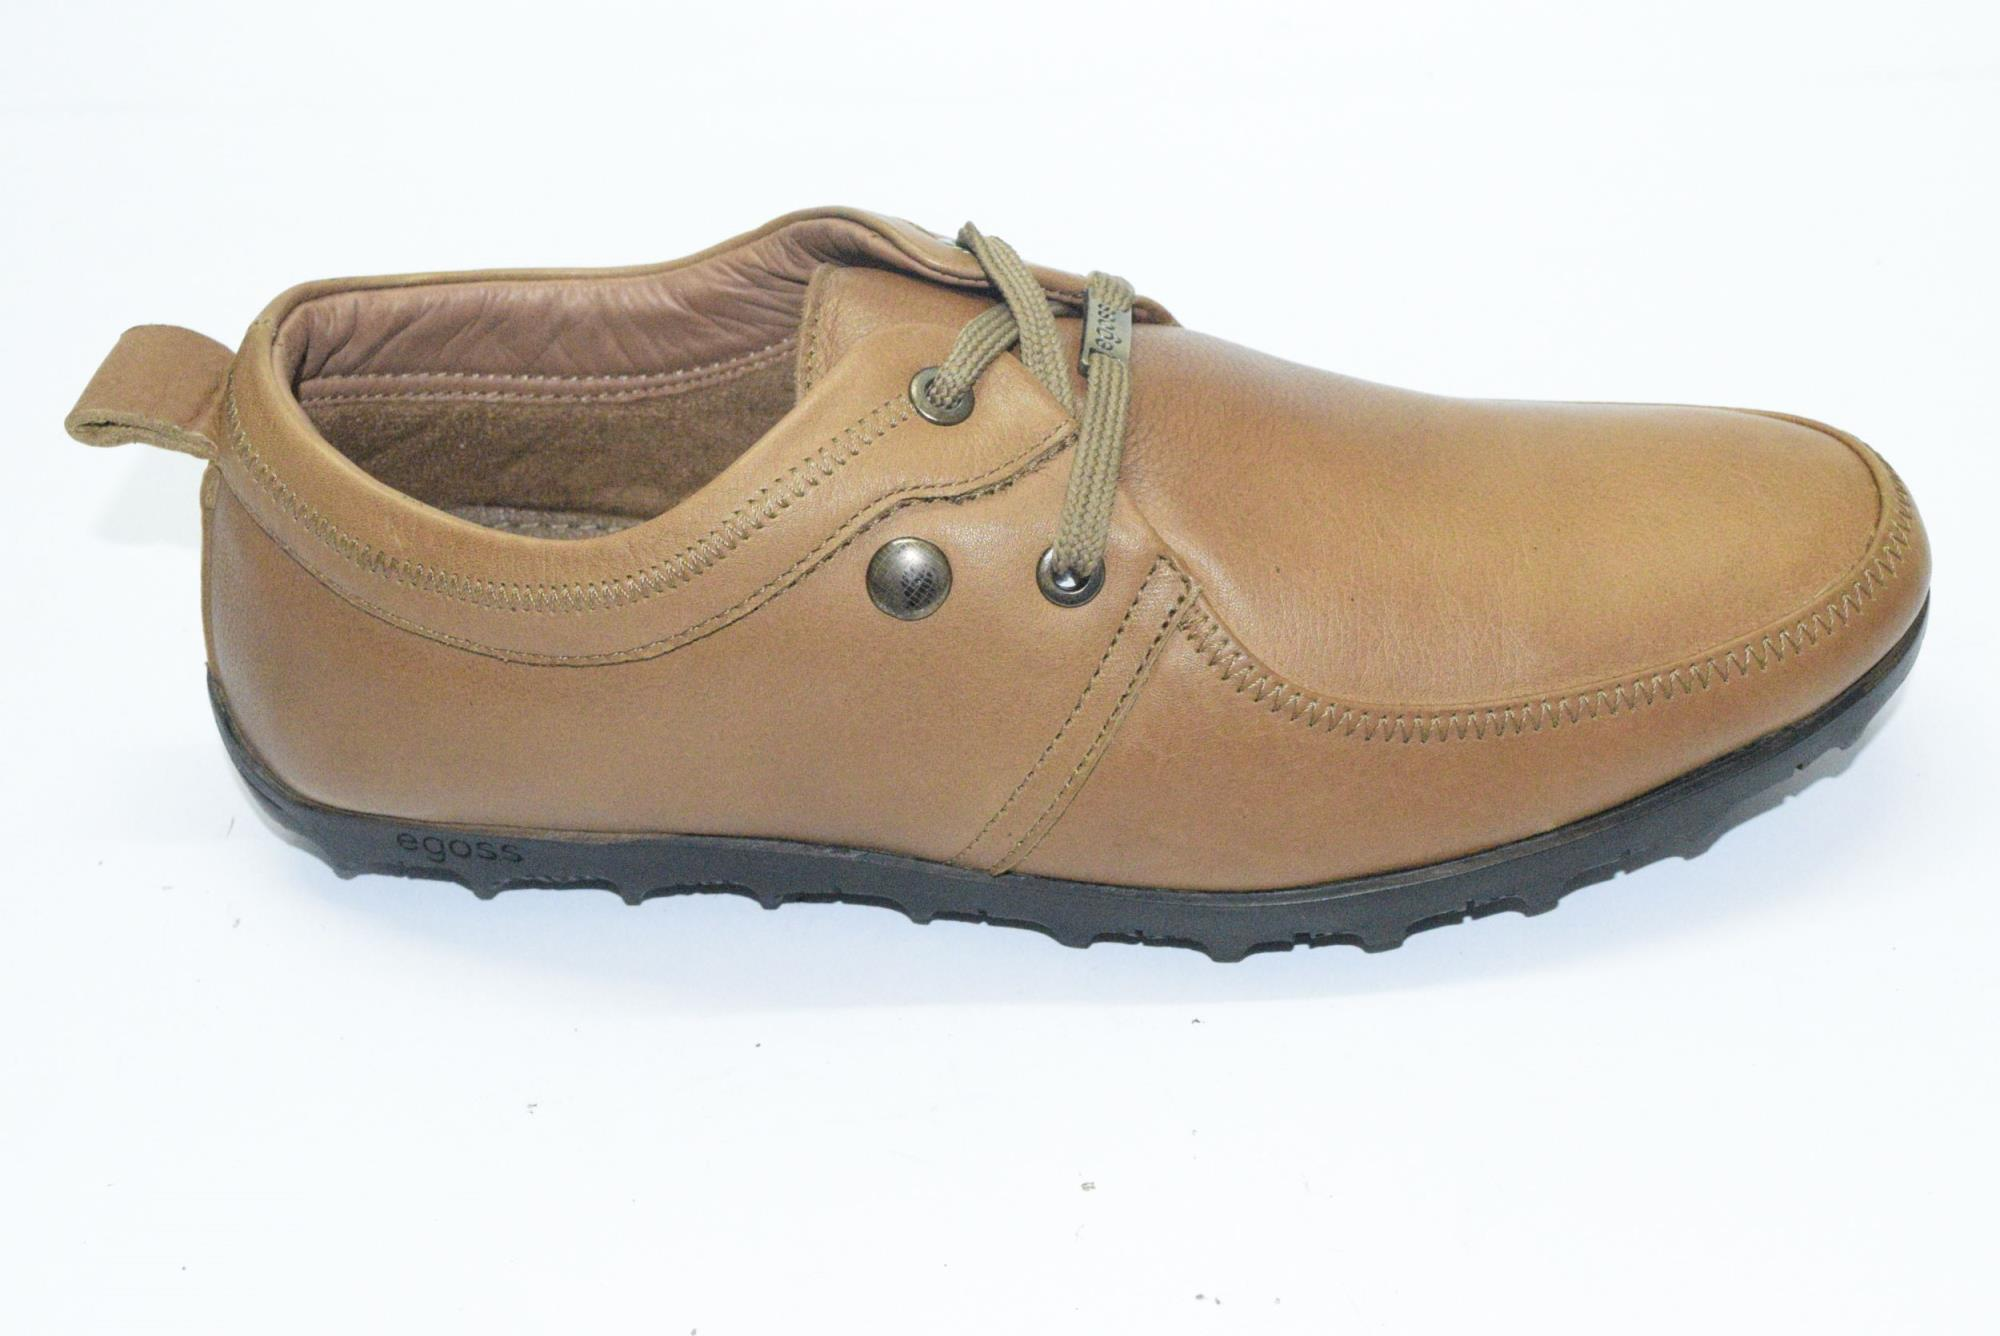 a6f1474ea166 Egoss TAN CASUAL SHOES    Online Shopping   PARMAR BOOT HOUSE